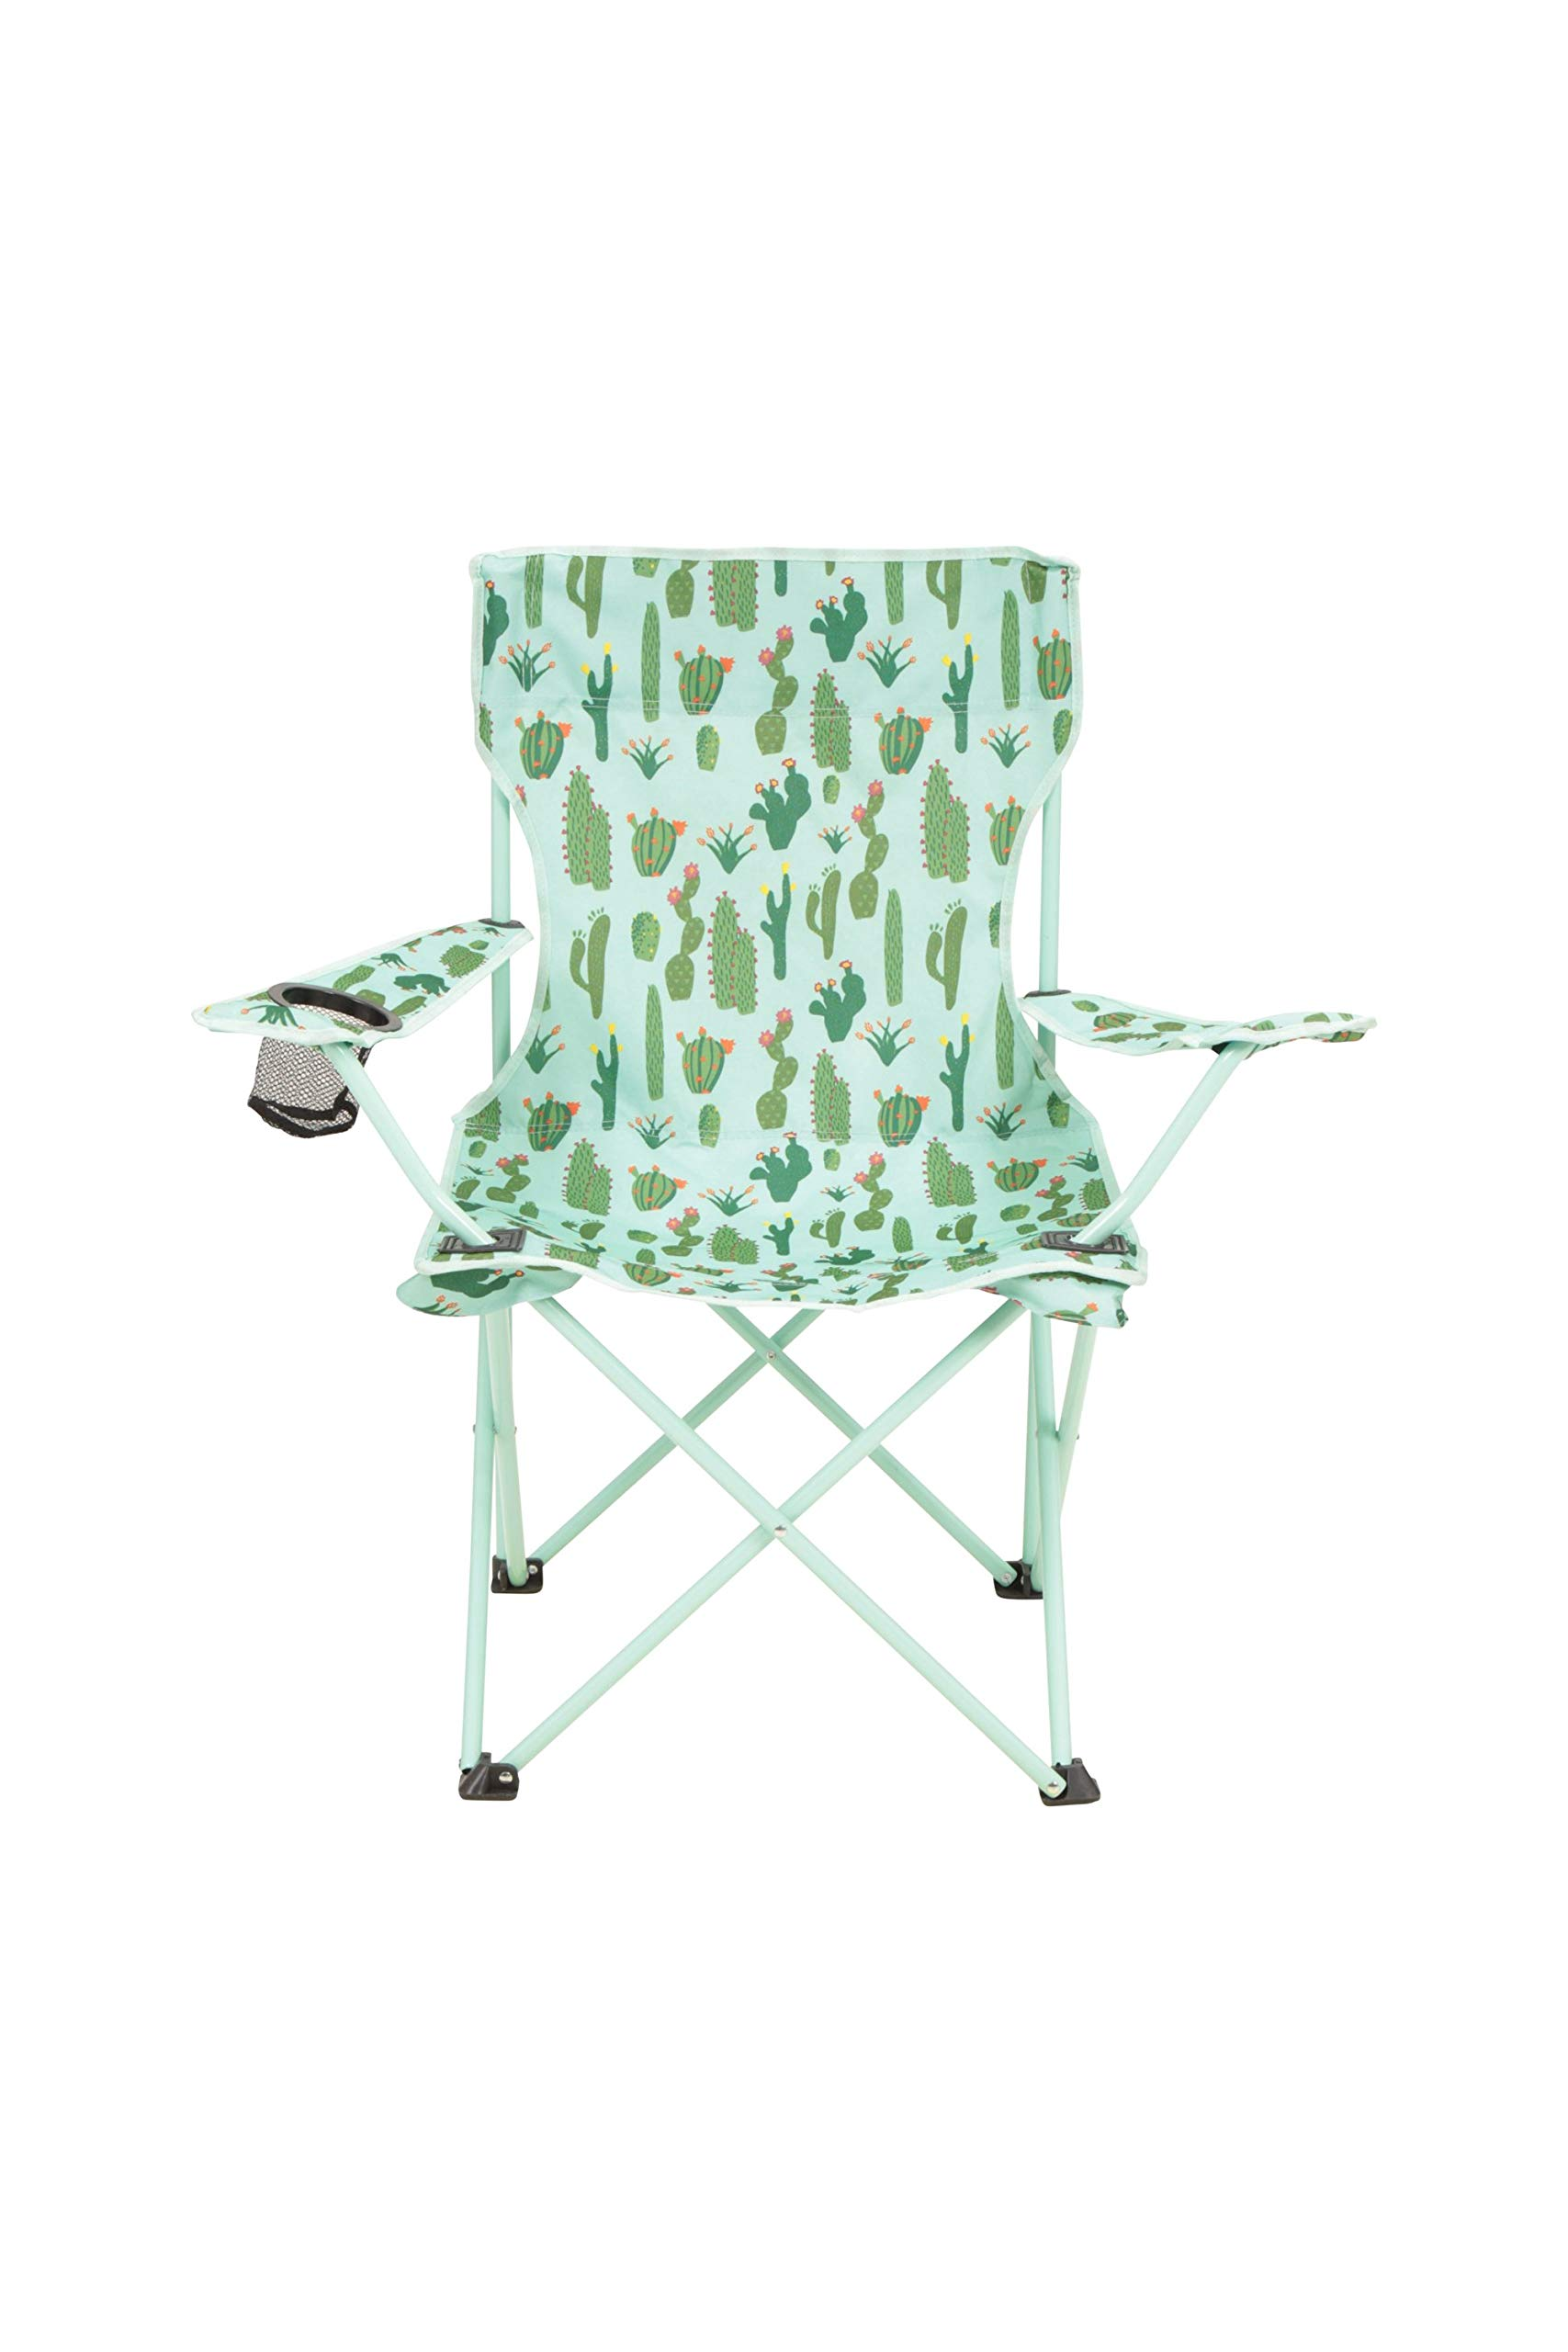 Outdoor Trail Compact Folding Camping Chair Beach Heavy Duty Frame Shoulder Travel Bag Festival Cup Holder Polka Dot Pattern